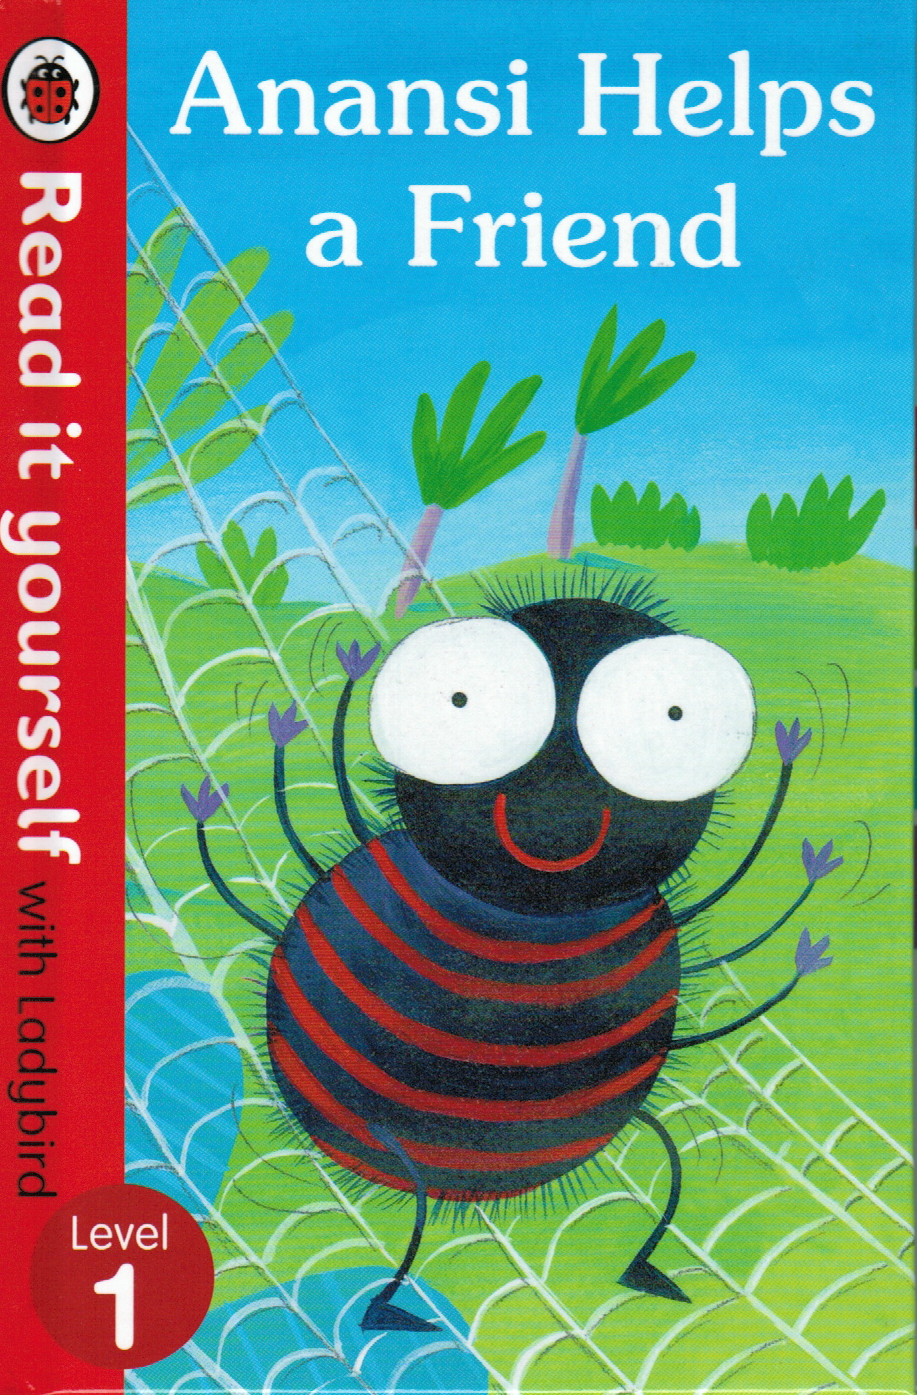 R.I.Y.1 - ANANSI HELPS A FRIEND